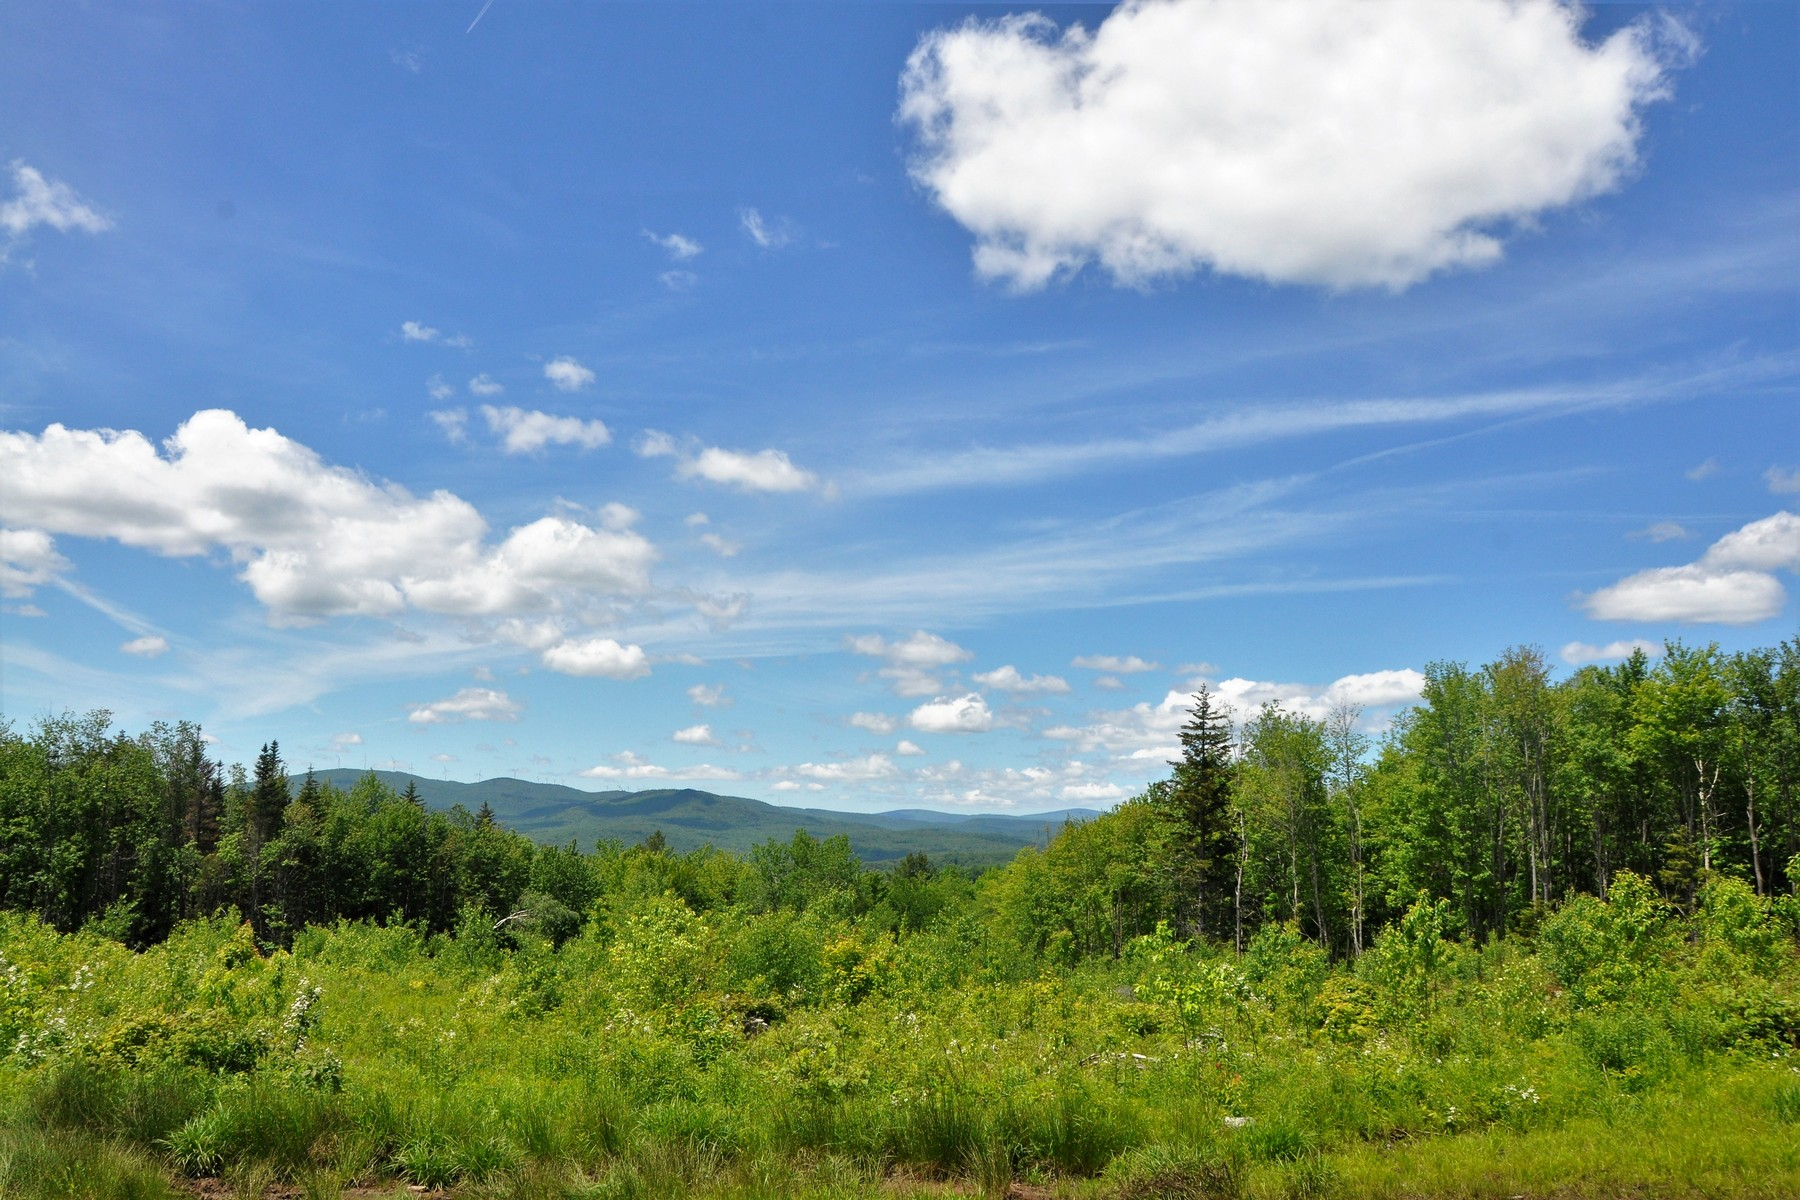 Land for Sale at Hebard Hill Ridge, Whitingham Hebard Hill Ridge Whitingham, Vermont 05361 United States